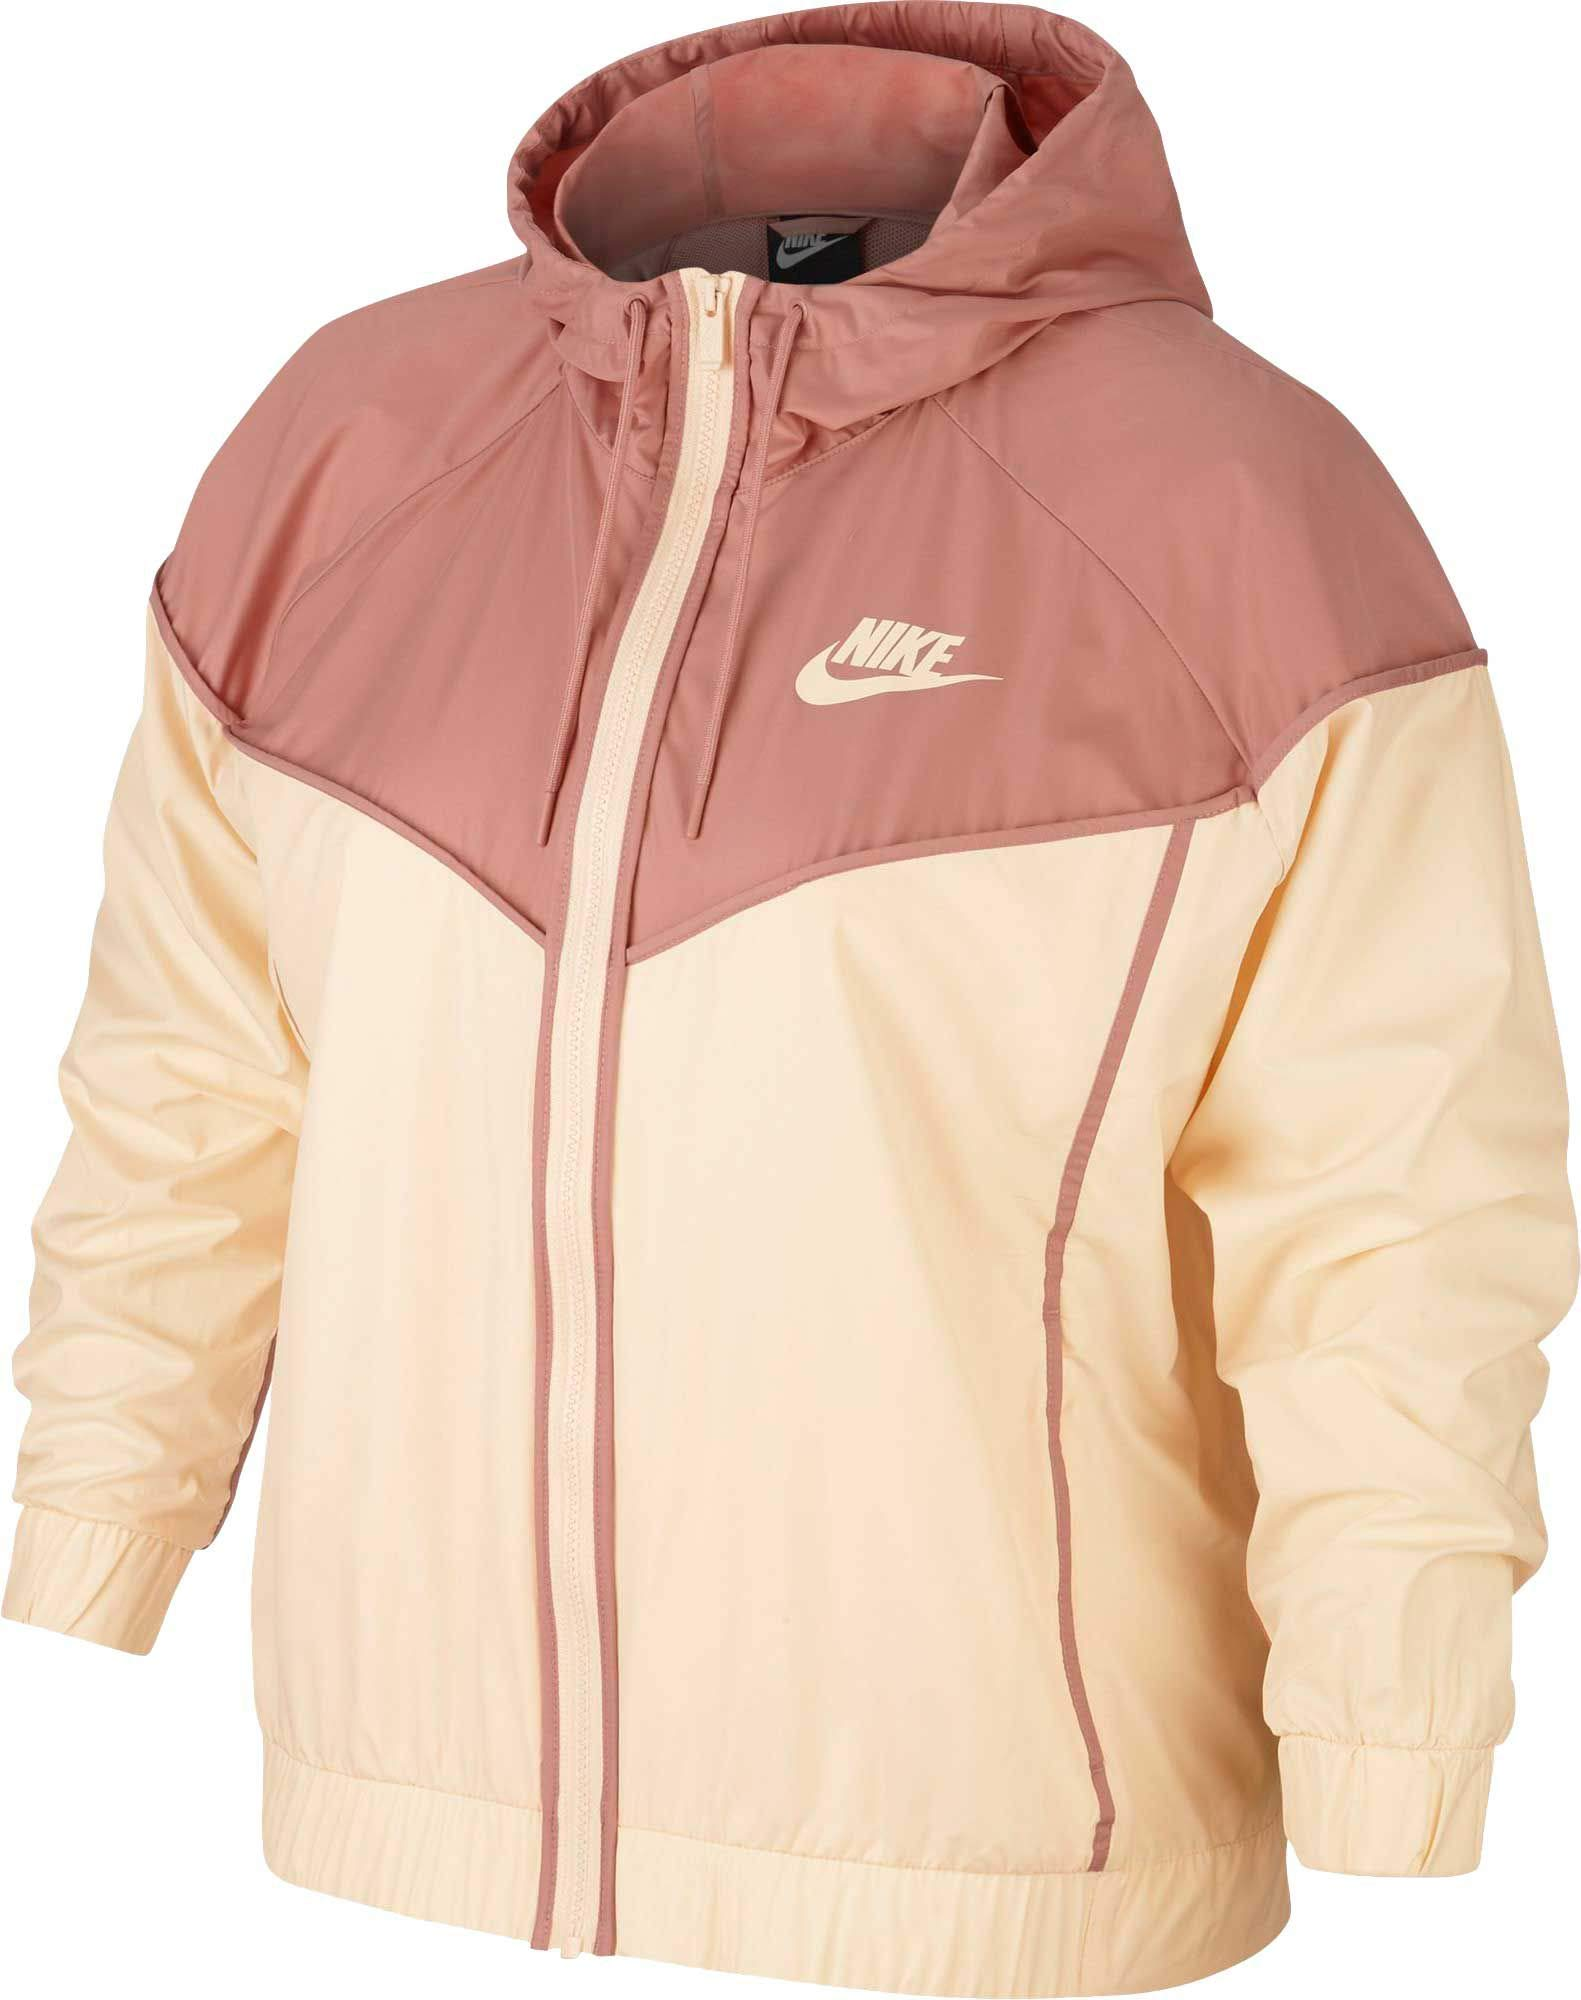 Nike Women's Plus Size Sportswear Windrunner Jacket (Guava Ice/Rust Pink, 2X) by Nike (Image #1)